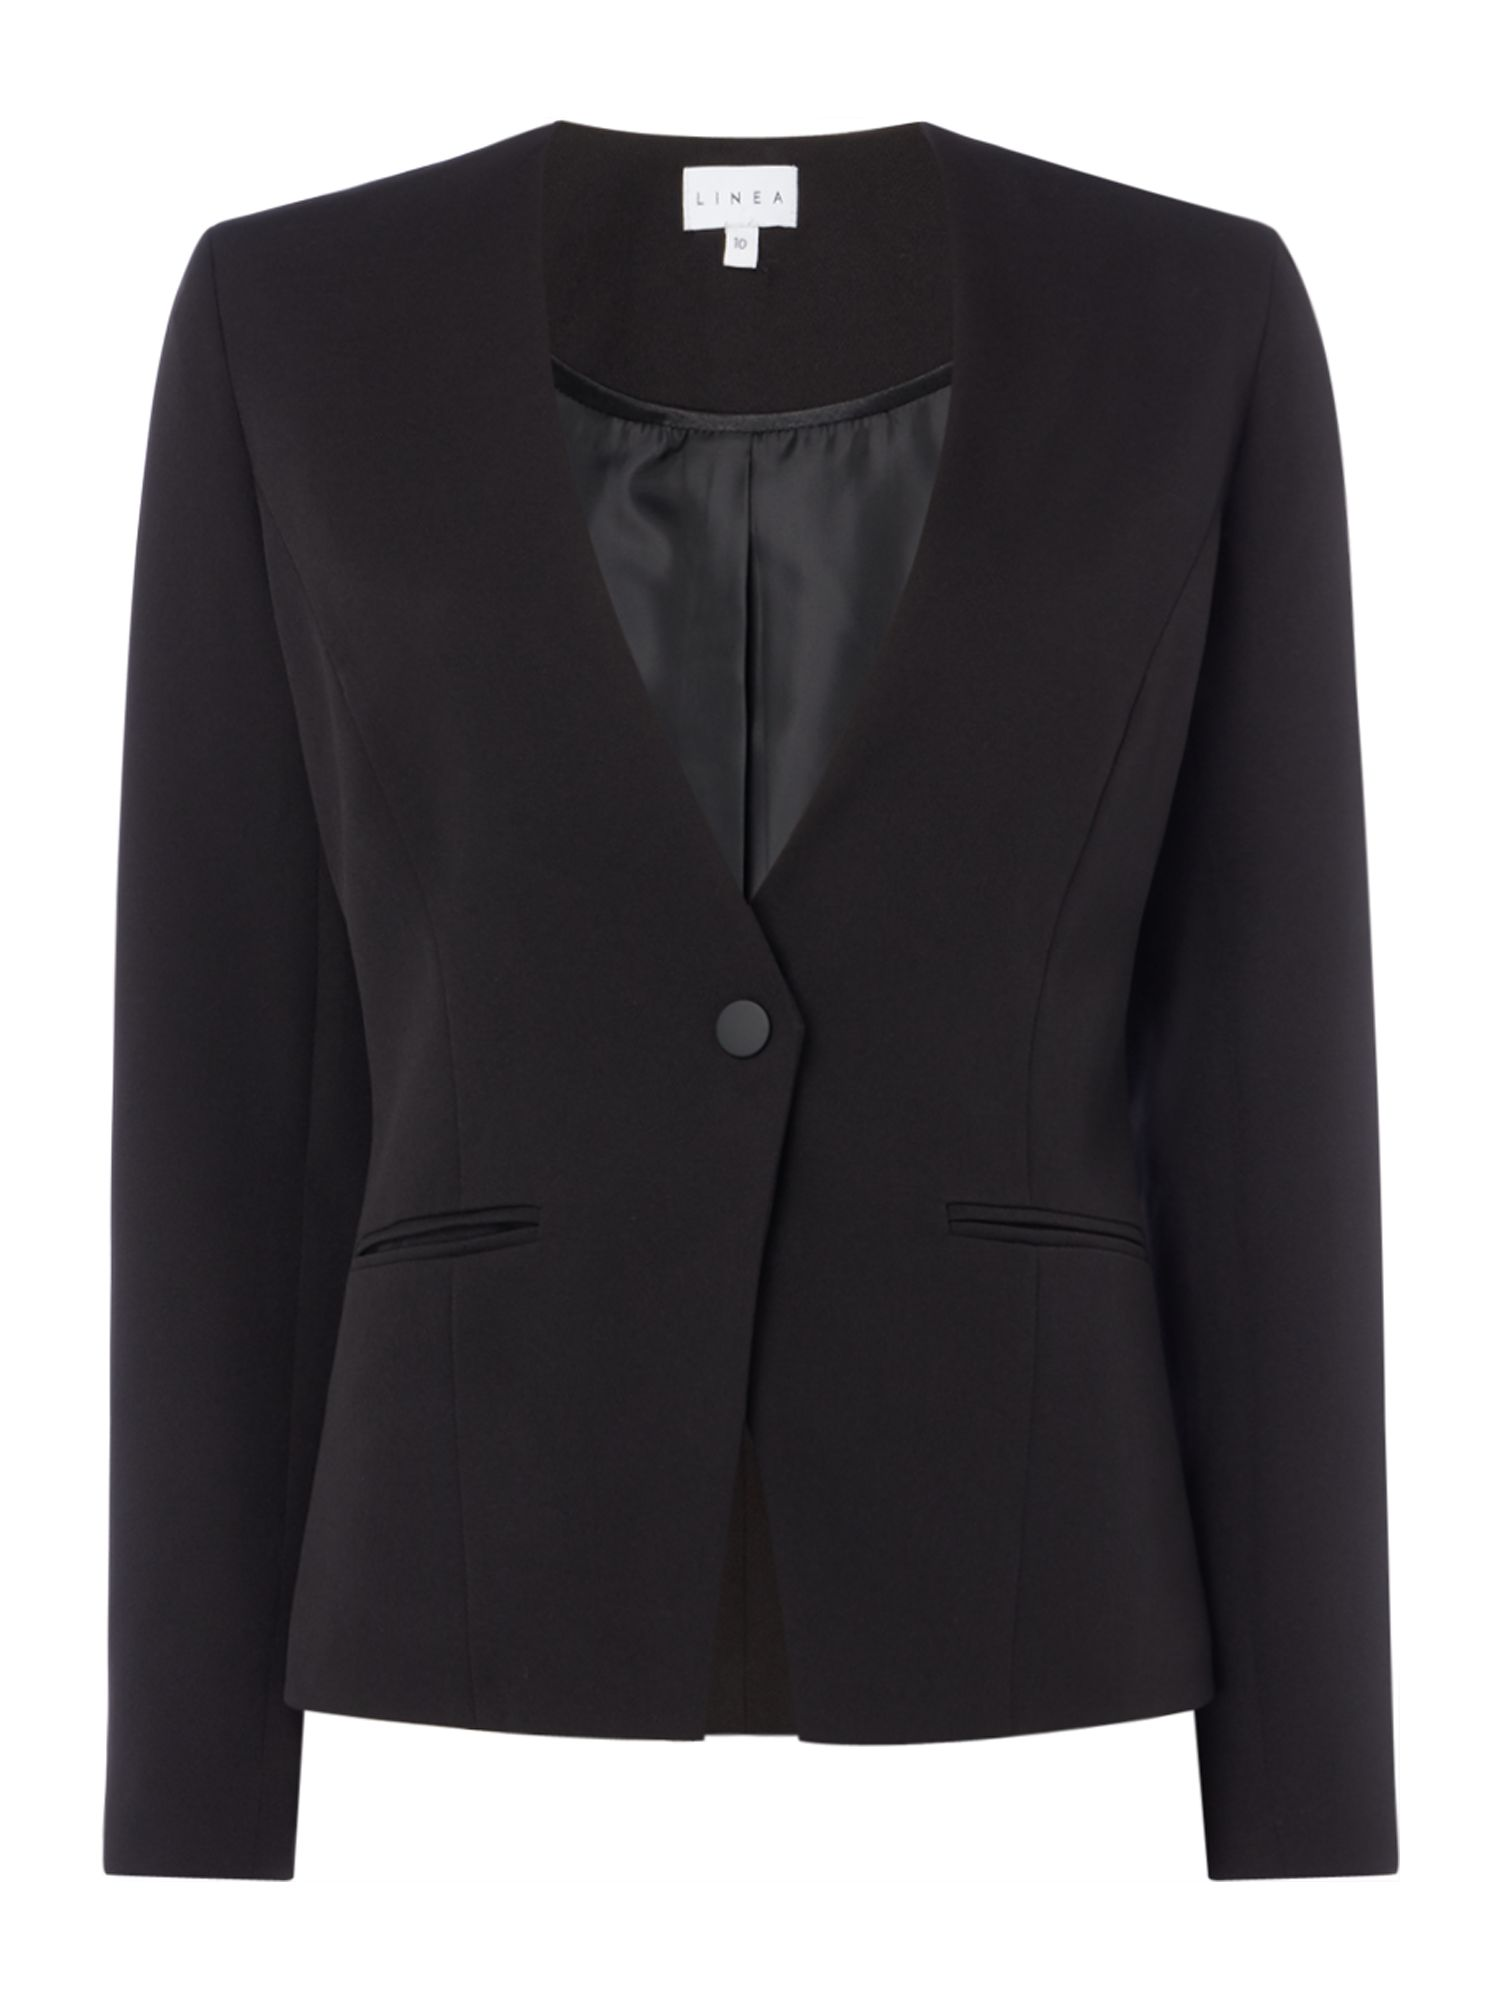 Linea Khloe structured jacket with popper, Black